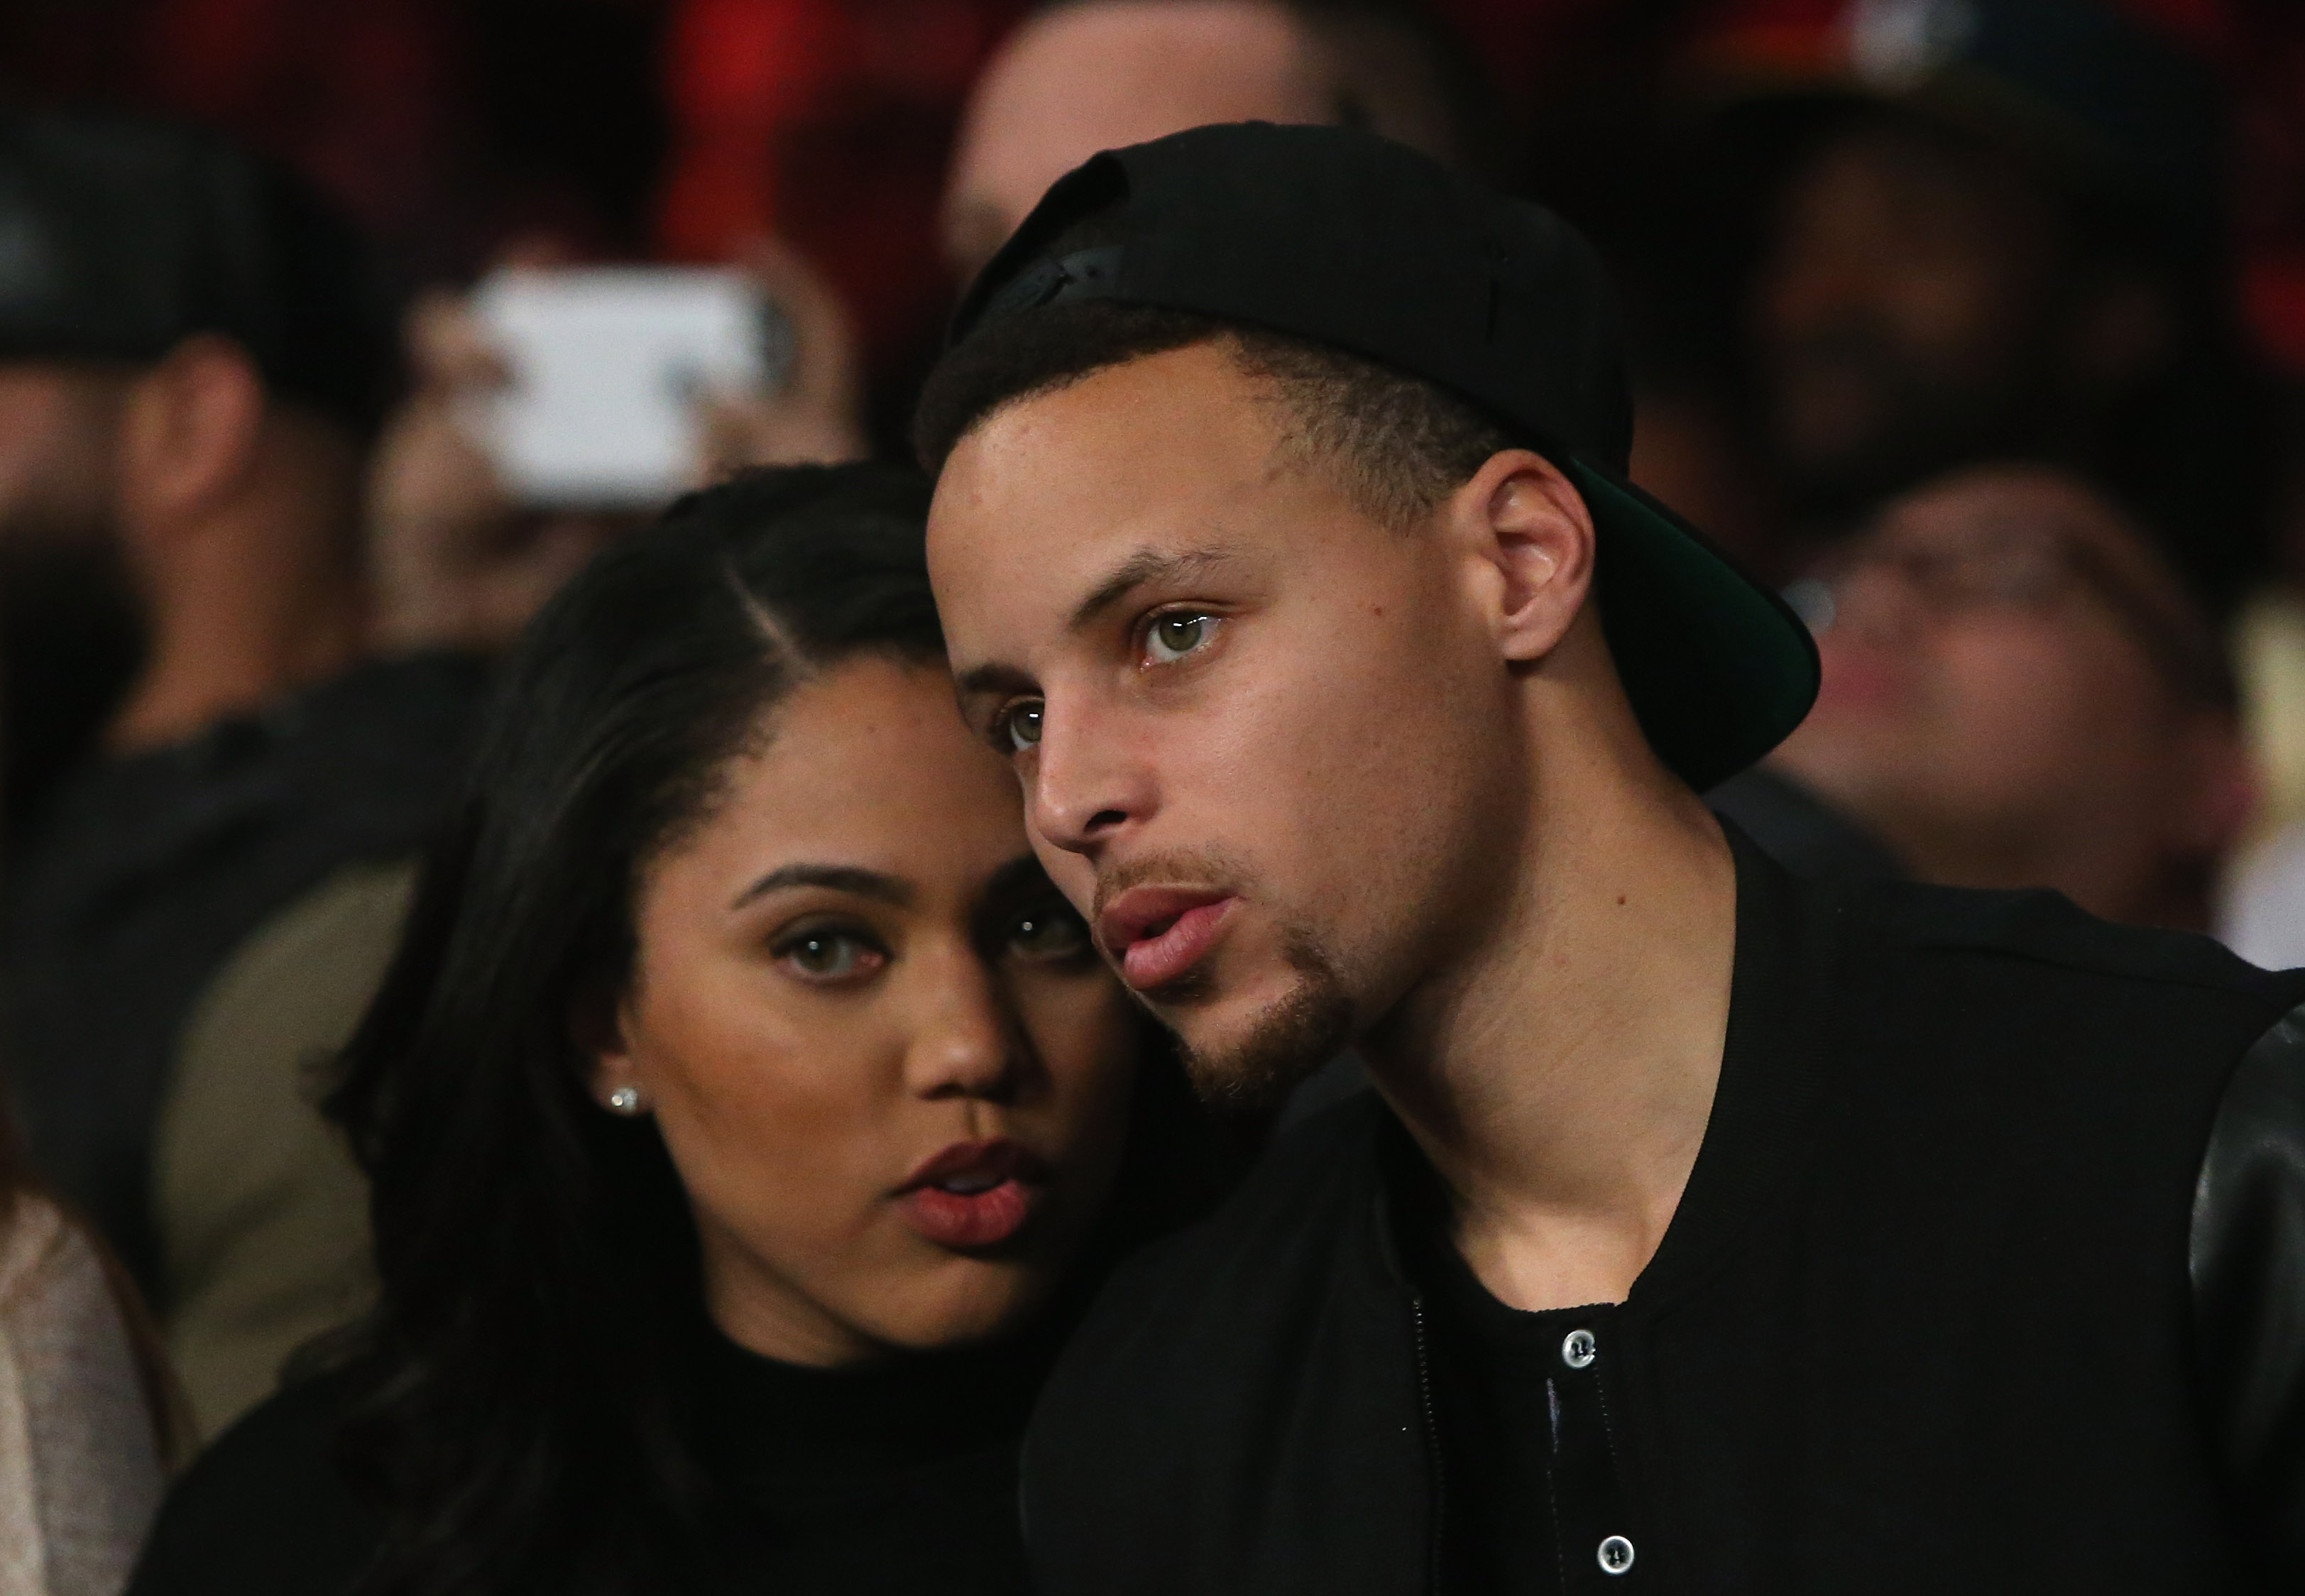 Stephen Curry of the Golden State Warriors and his wife Ayesha attend the Andre Ward fight against Sullivan Barrera in their IBF Light Heavyweight bout at ORACLE Arena on March 26, 2016, in Oakland, Calif.